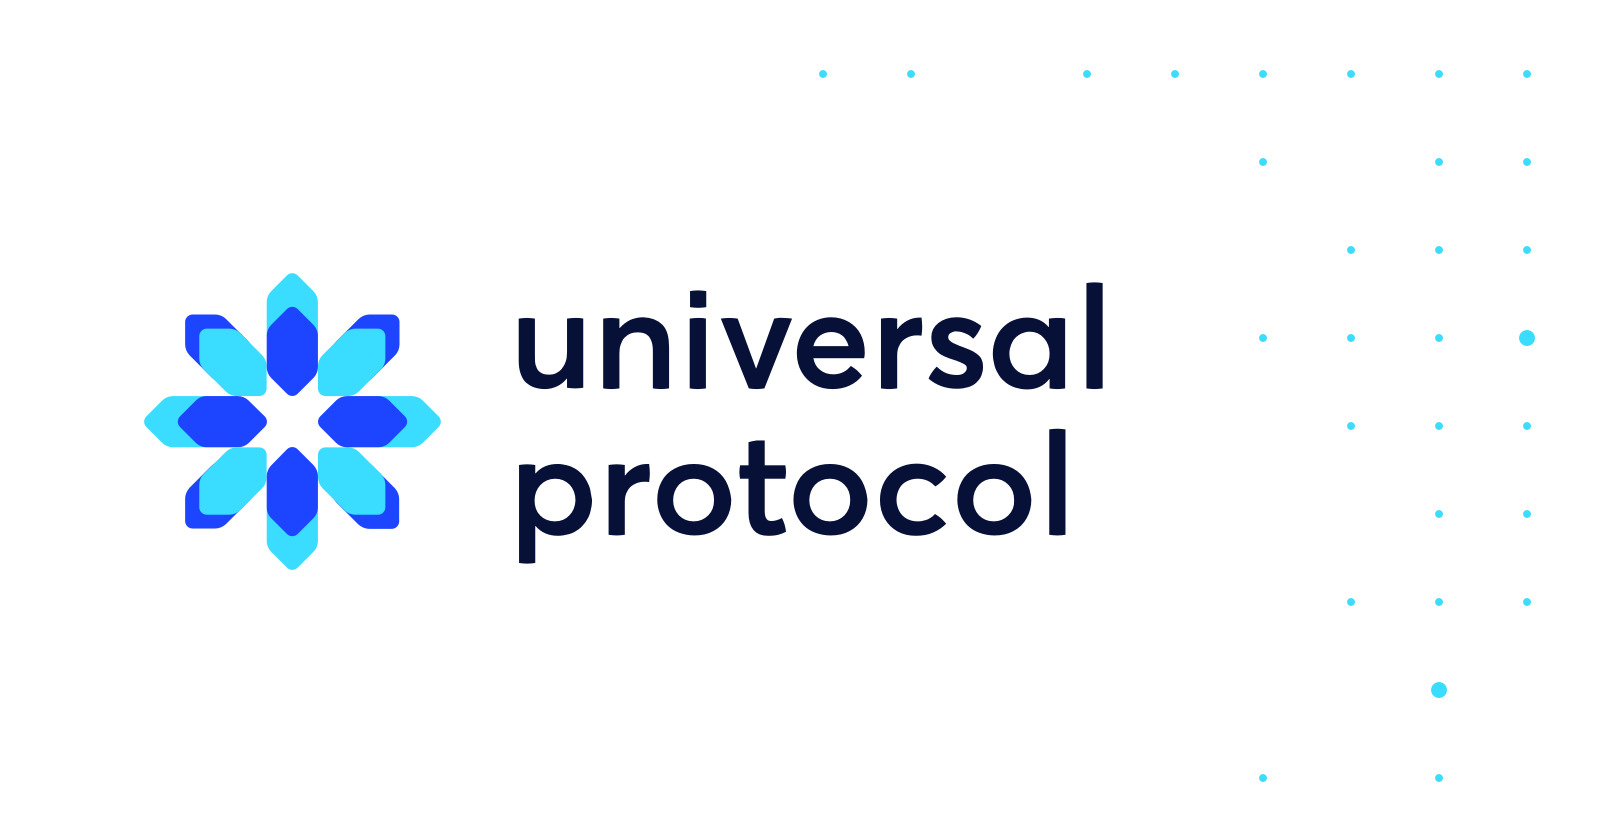 The Universal Protocol Alliance Lists Its Token on Bitcoin.com's Exchange In Its Quest for Blockchain Interoperability